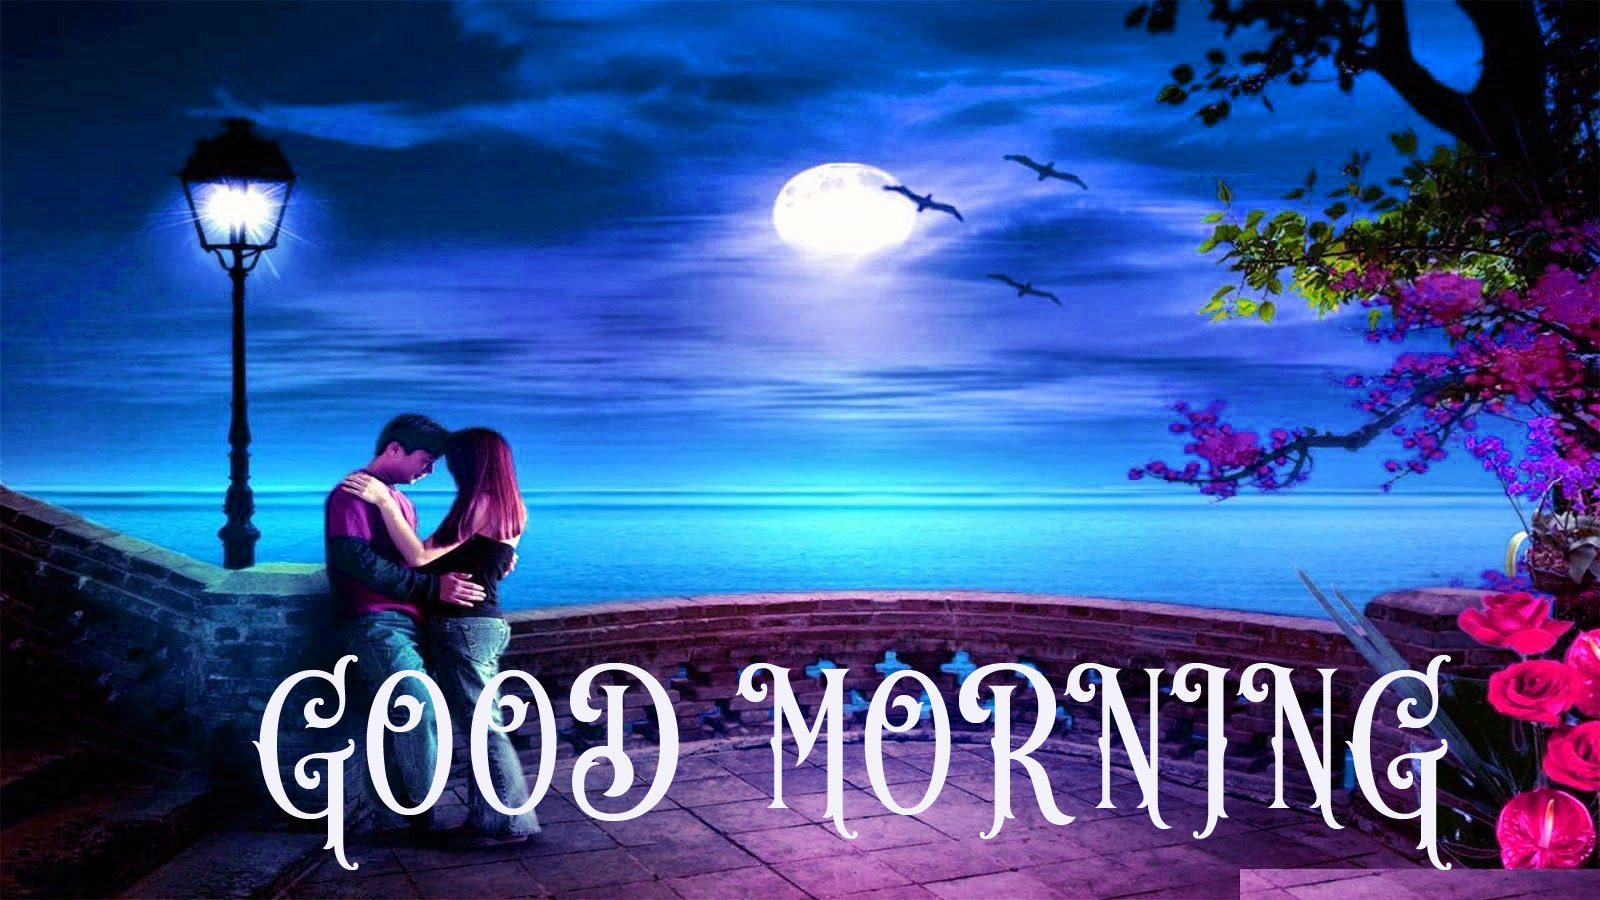 New Lover Good Morning Images Pictures Wallpaper Pics Download